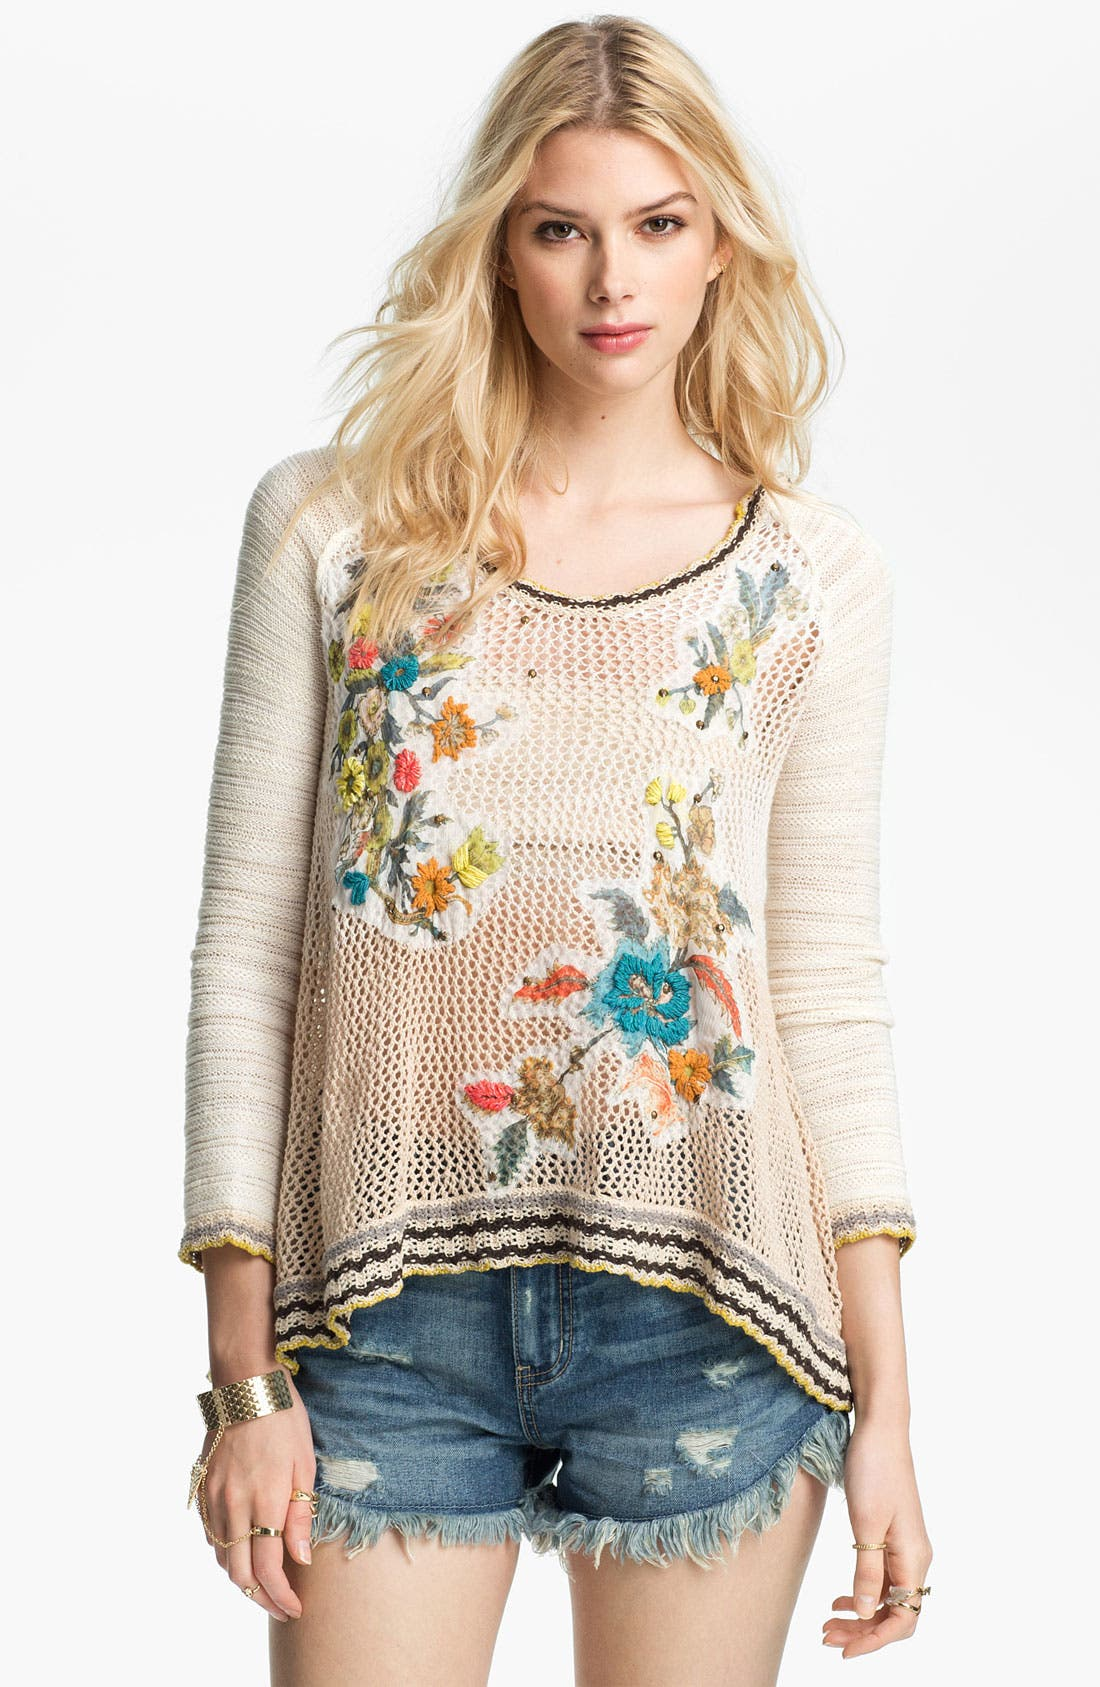 Alternate Image 1 Selected - Free People 'Menagerie' Embroidered Crochet Sweater